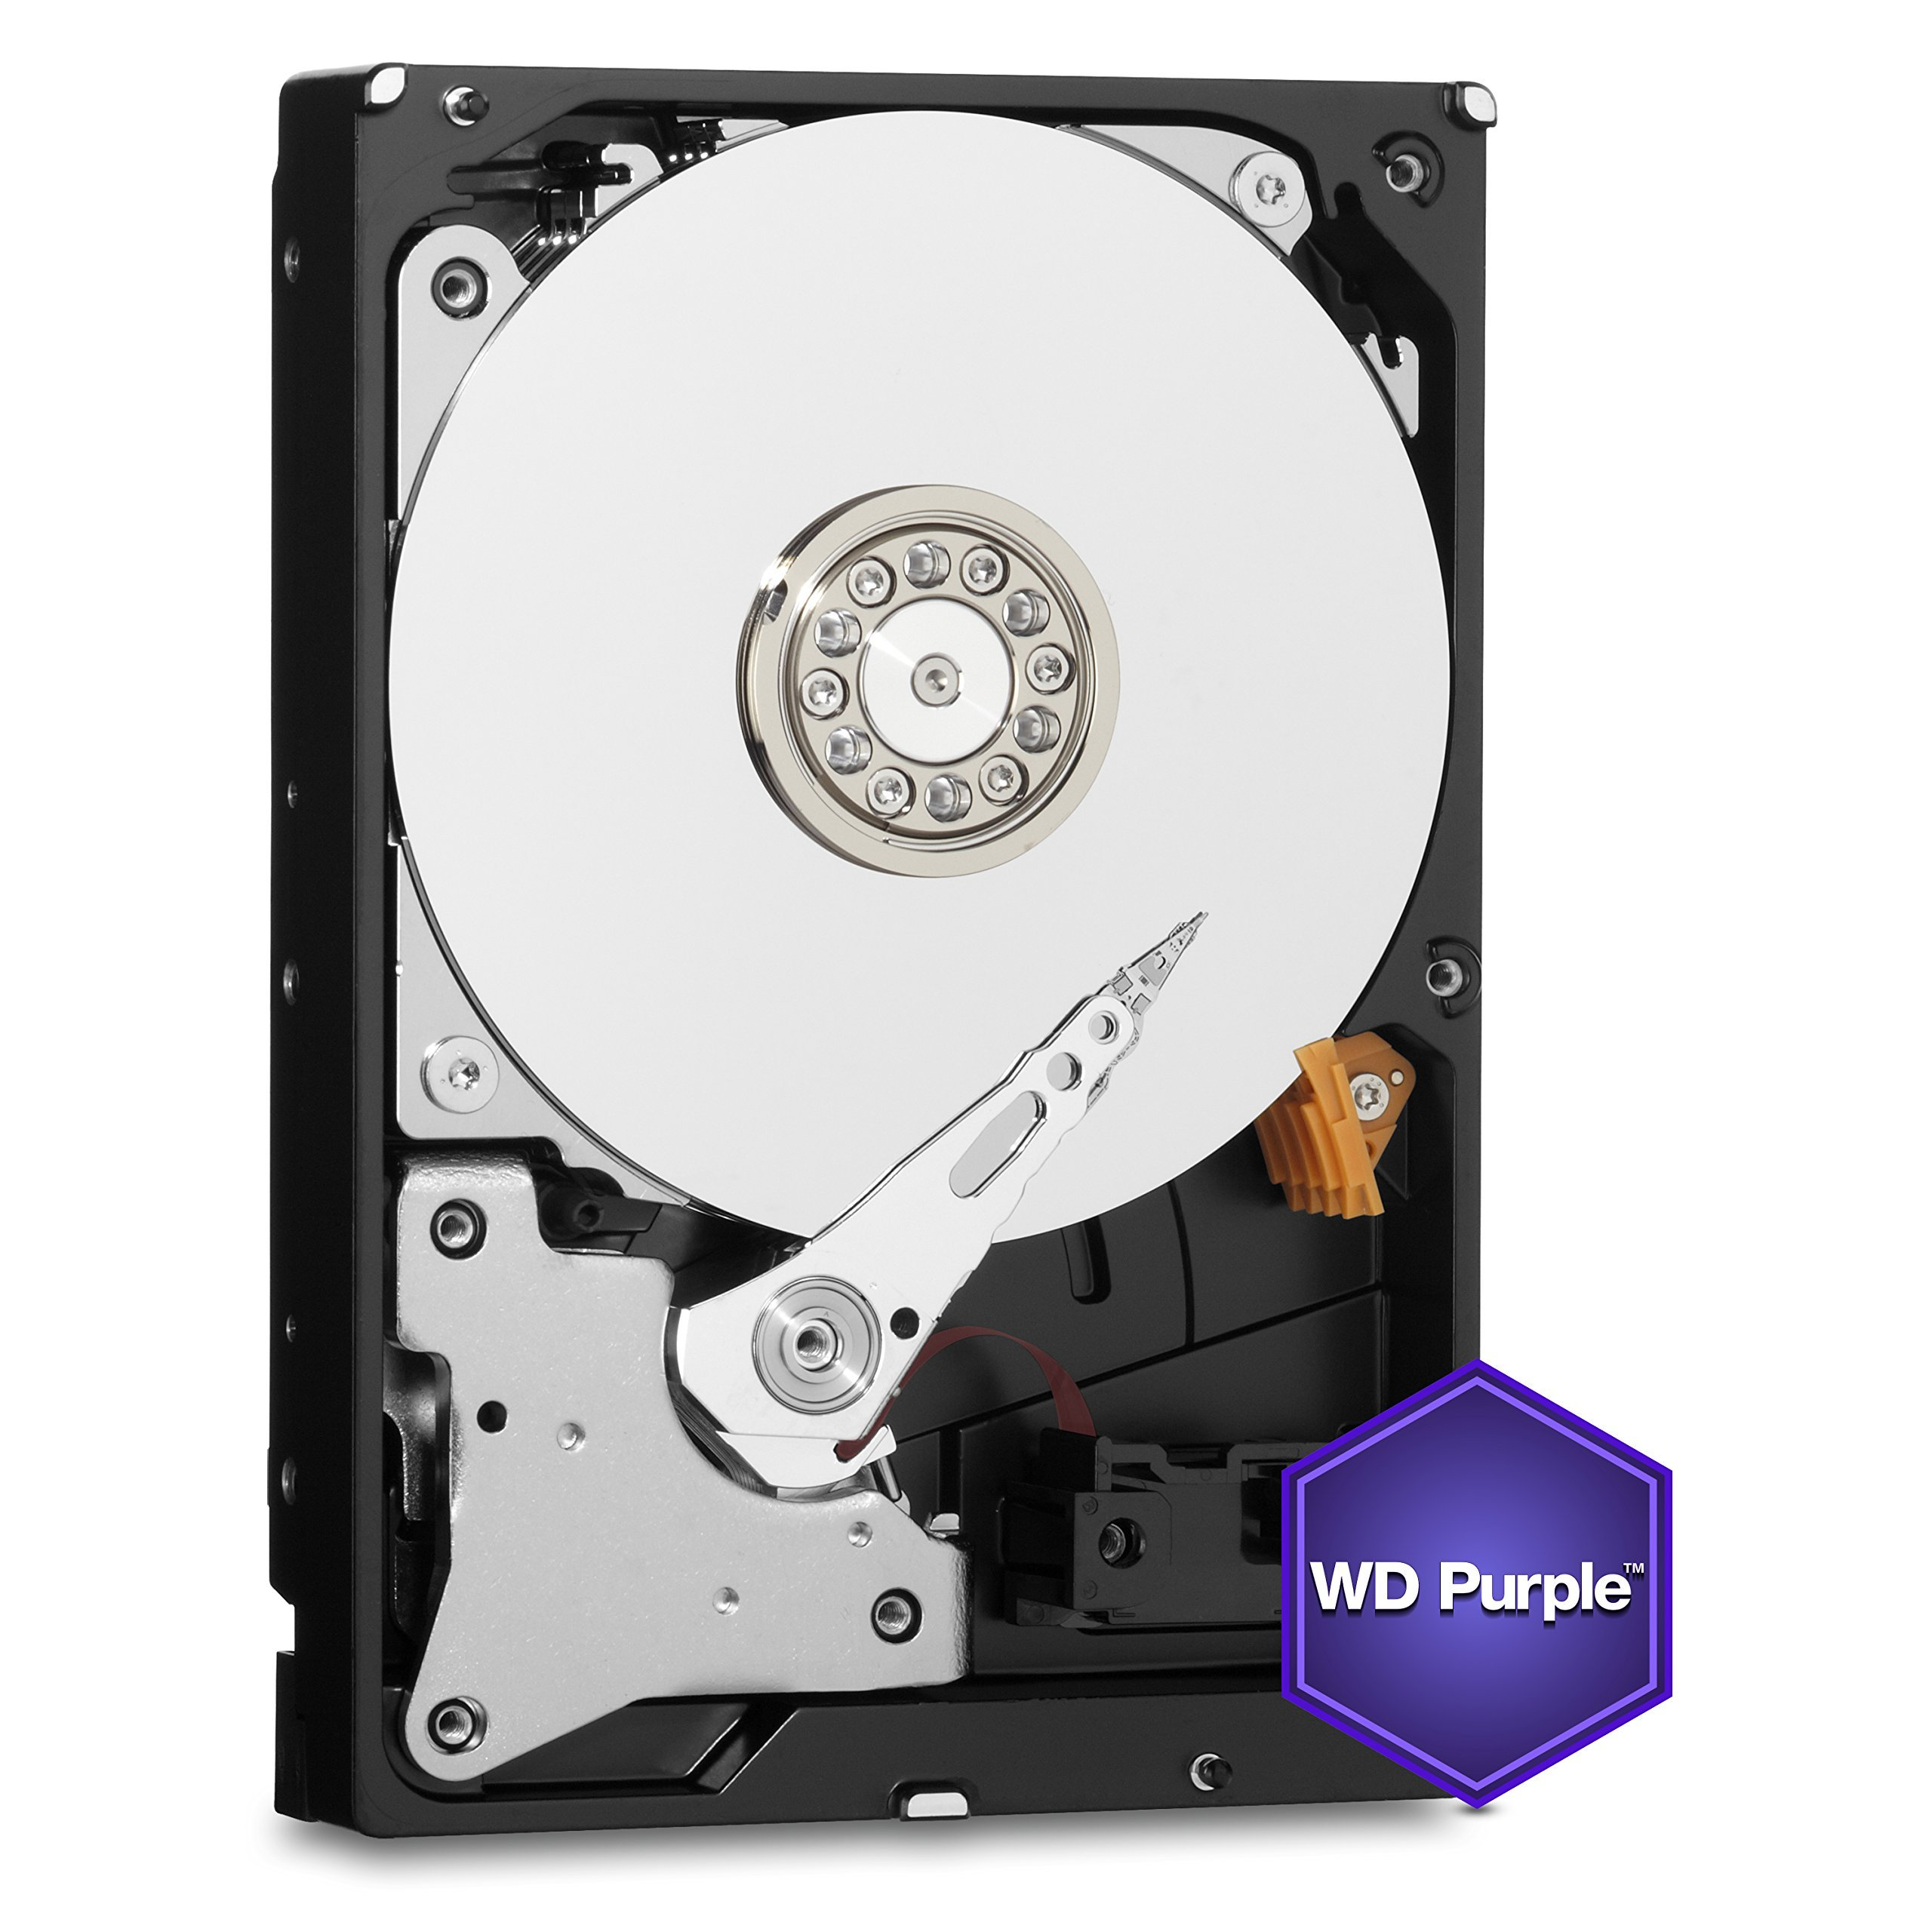 WD Purple 1TB Surveillance Hard Disk Drive - 5400 RPM Class SATA 6 Gb/s 64MB Cache 3.5 Inch - WD10PURX [Old Version] (Certified Refurbished) by Western Digital (Image #4)